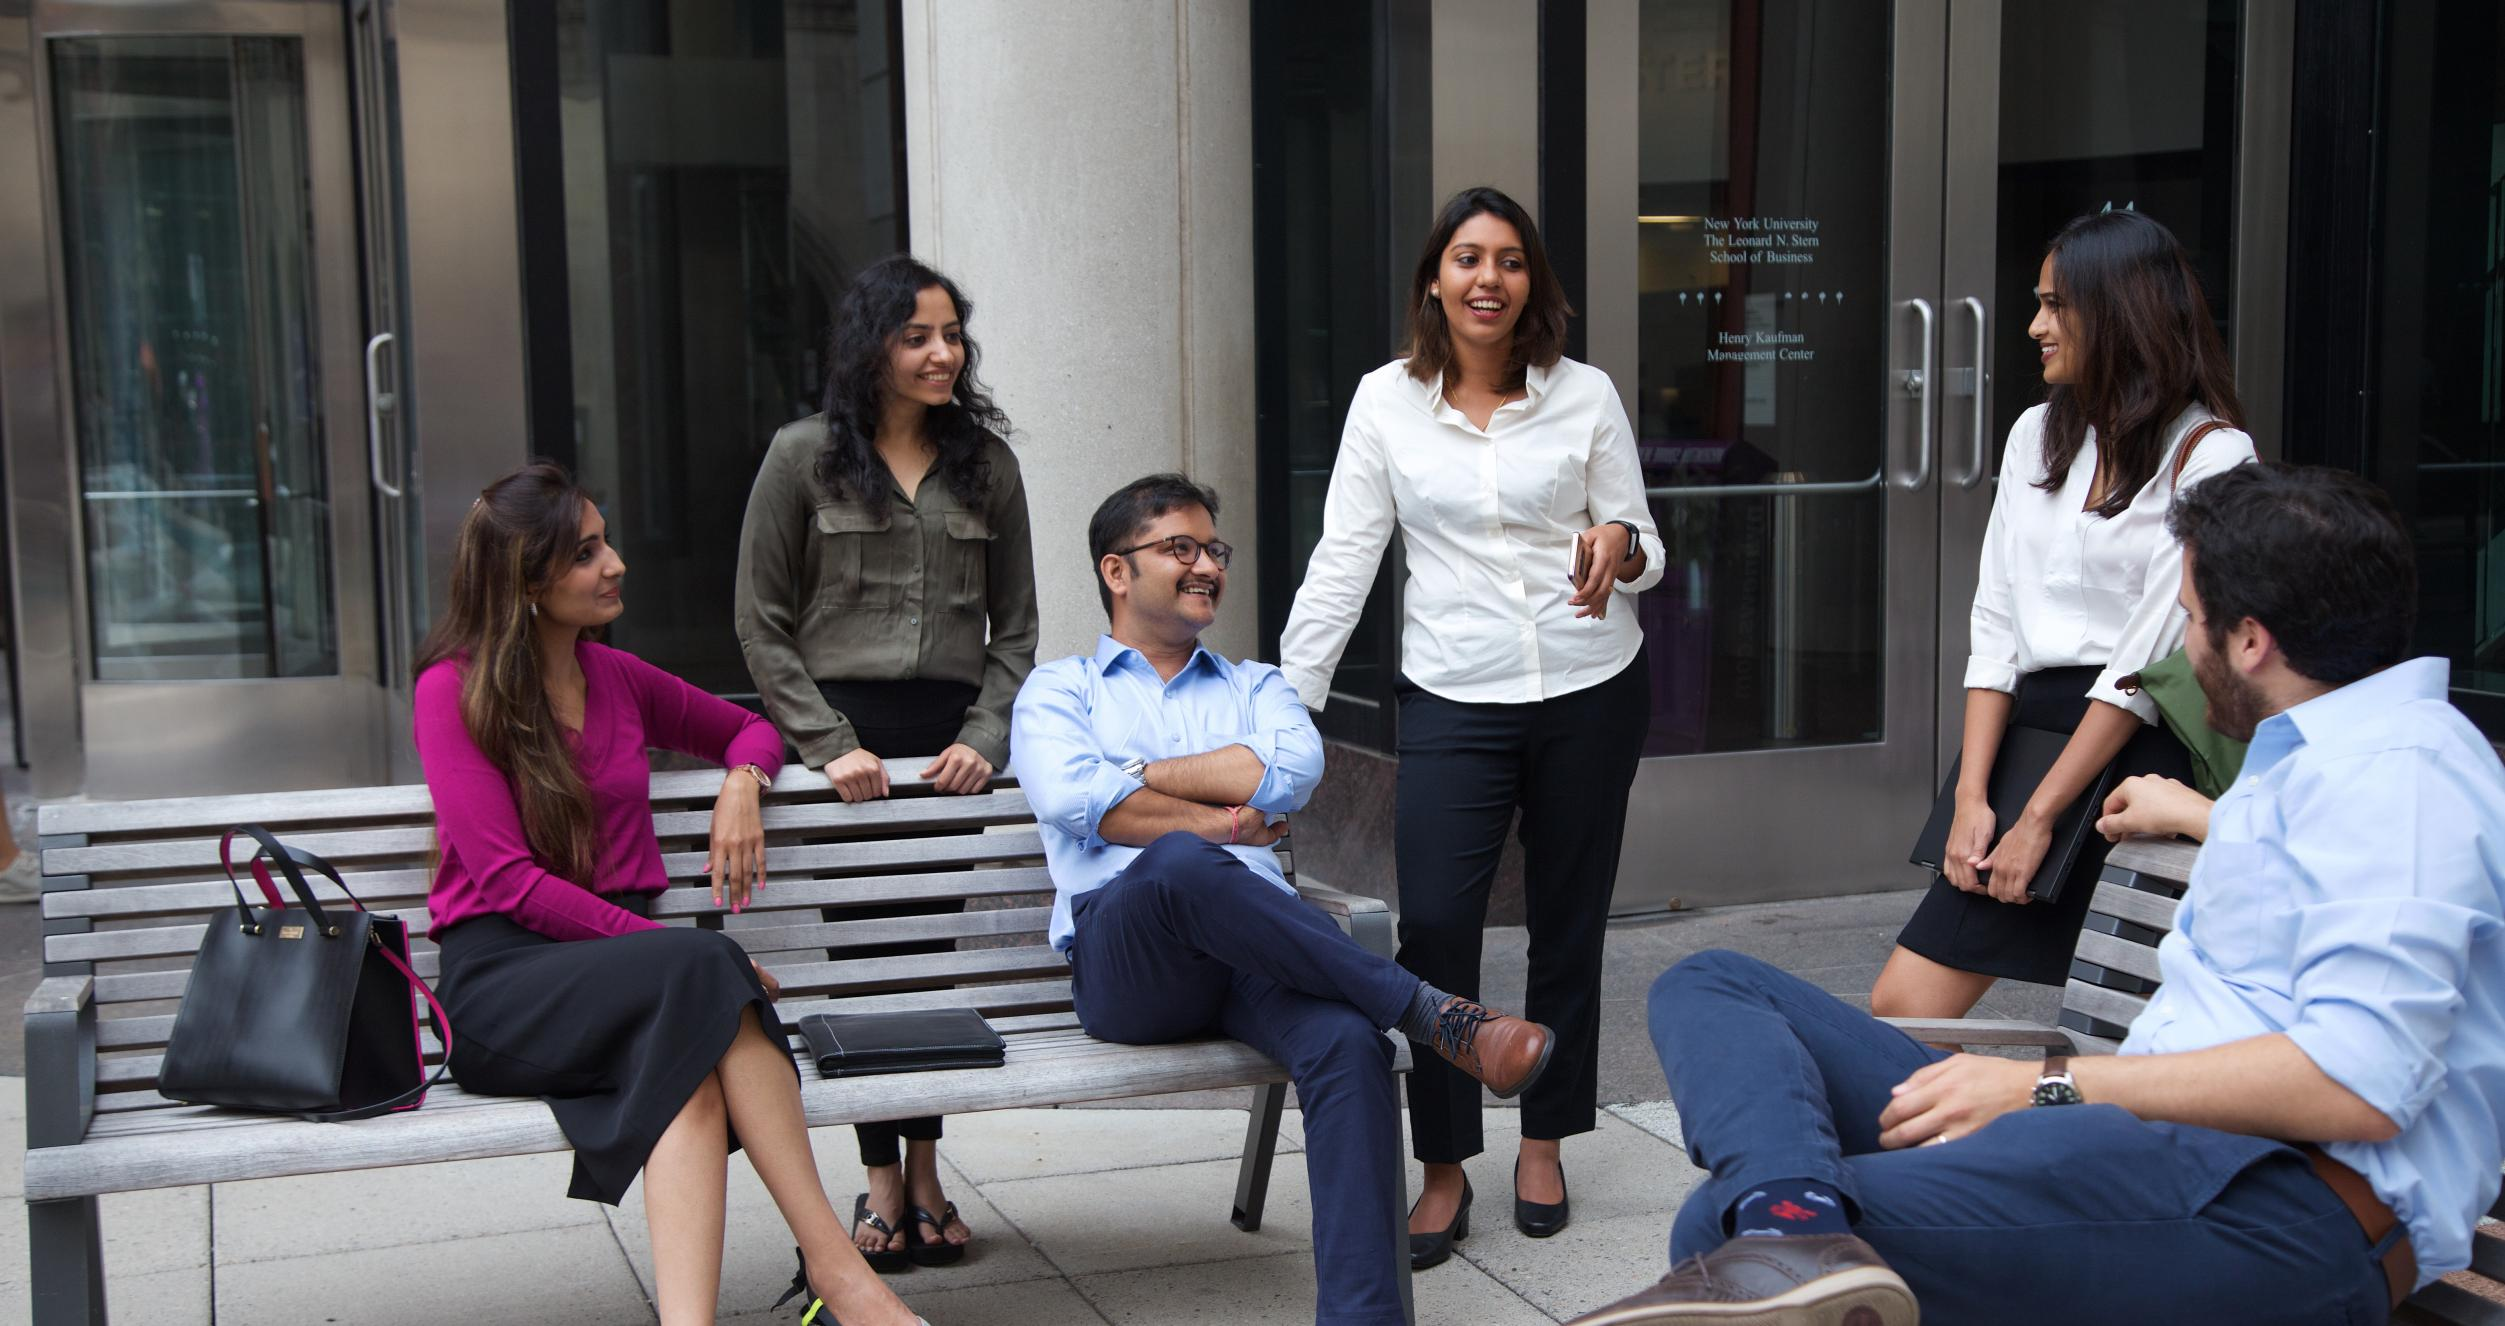 Stern students sitting and talking outside of Stern building